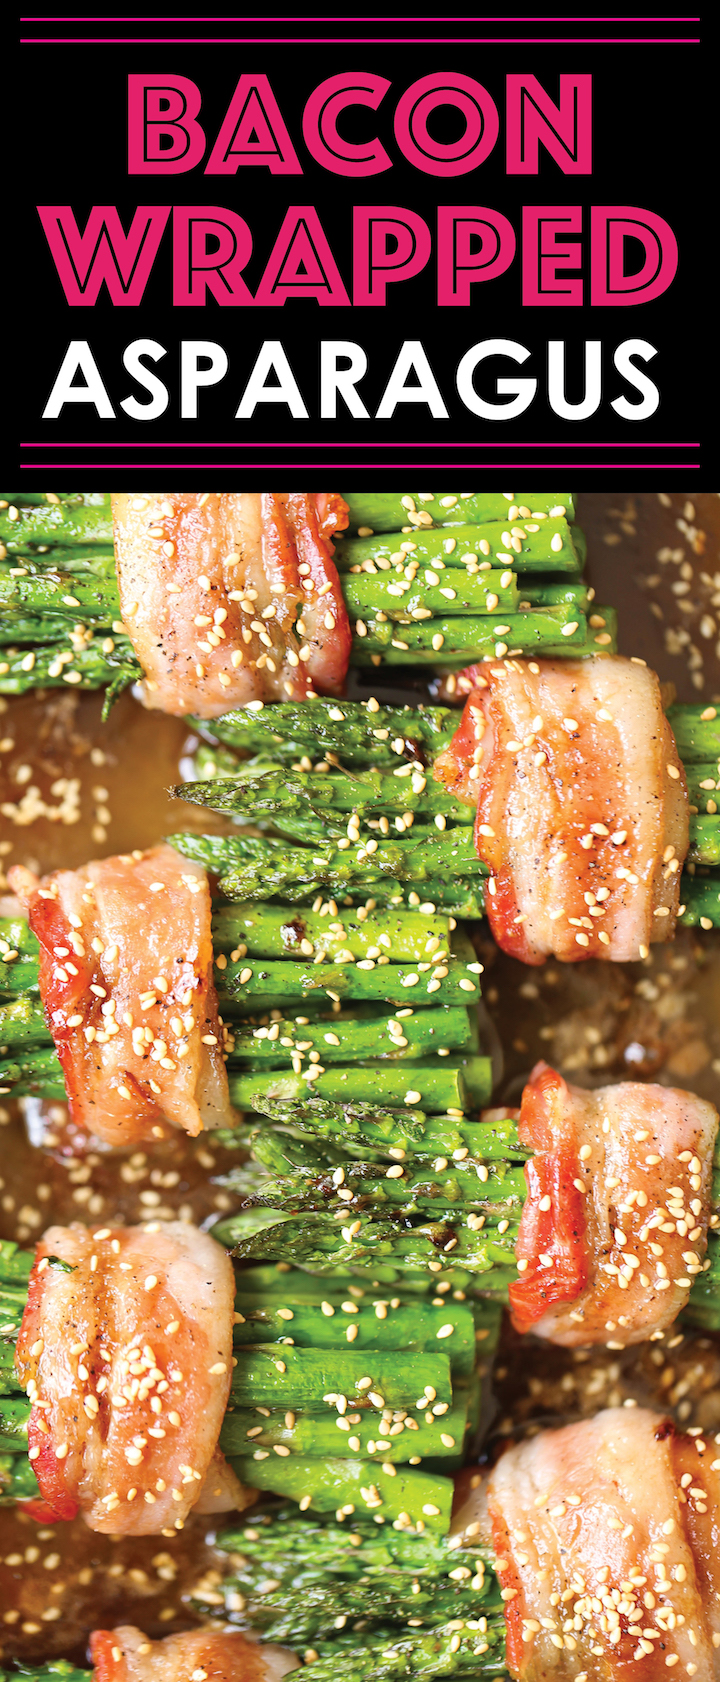 ... crisp-tender bacon in a buttery brown sugar glaze - grilled or baked